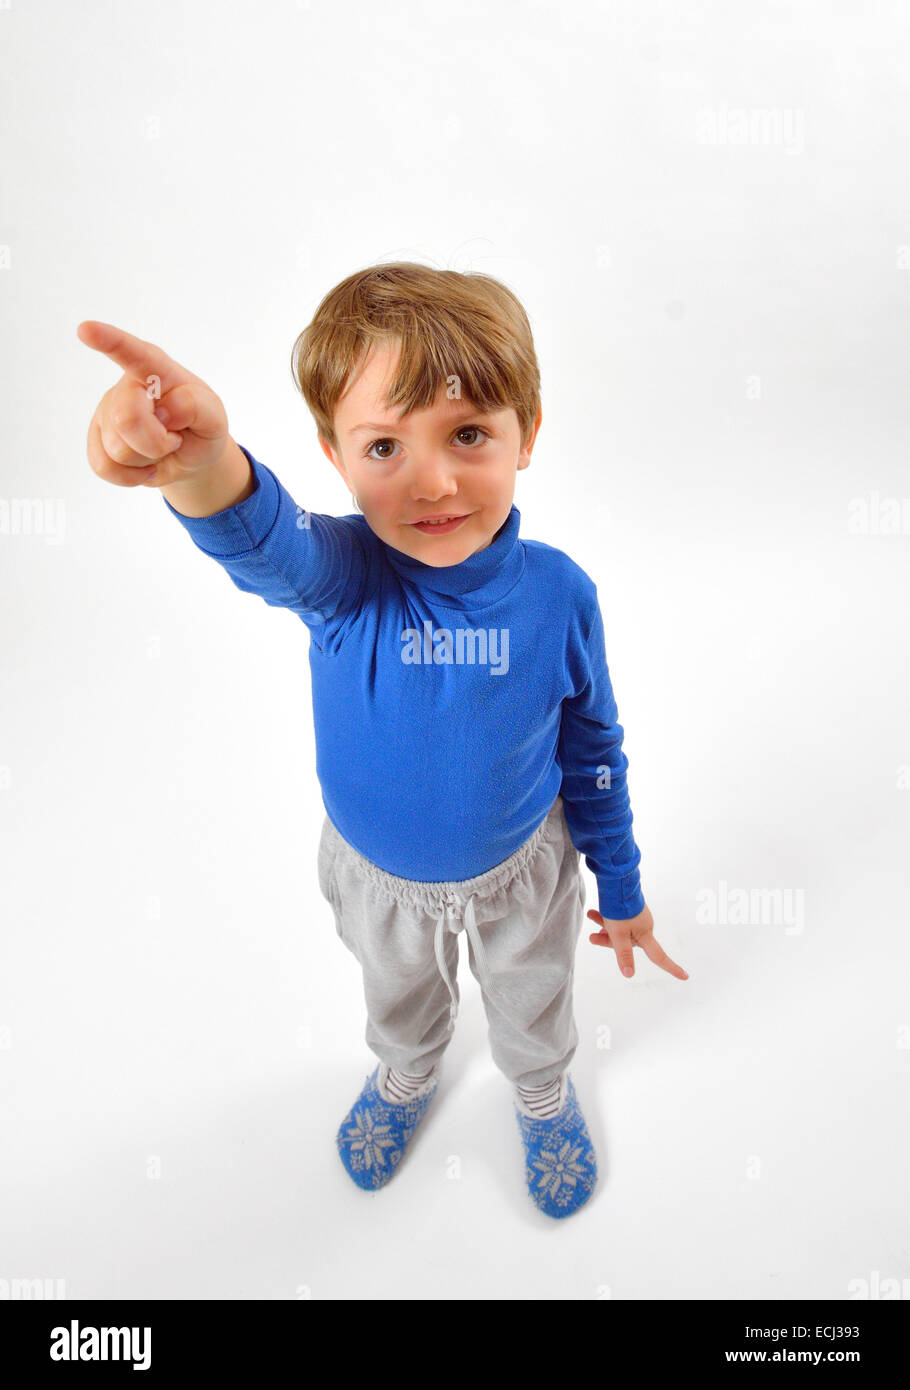 Cheerful little boy pointing up isolated - Stock Image